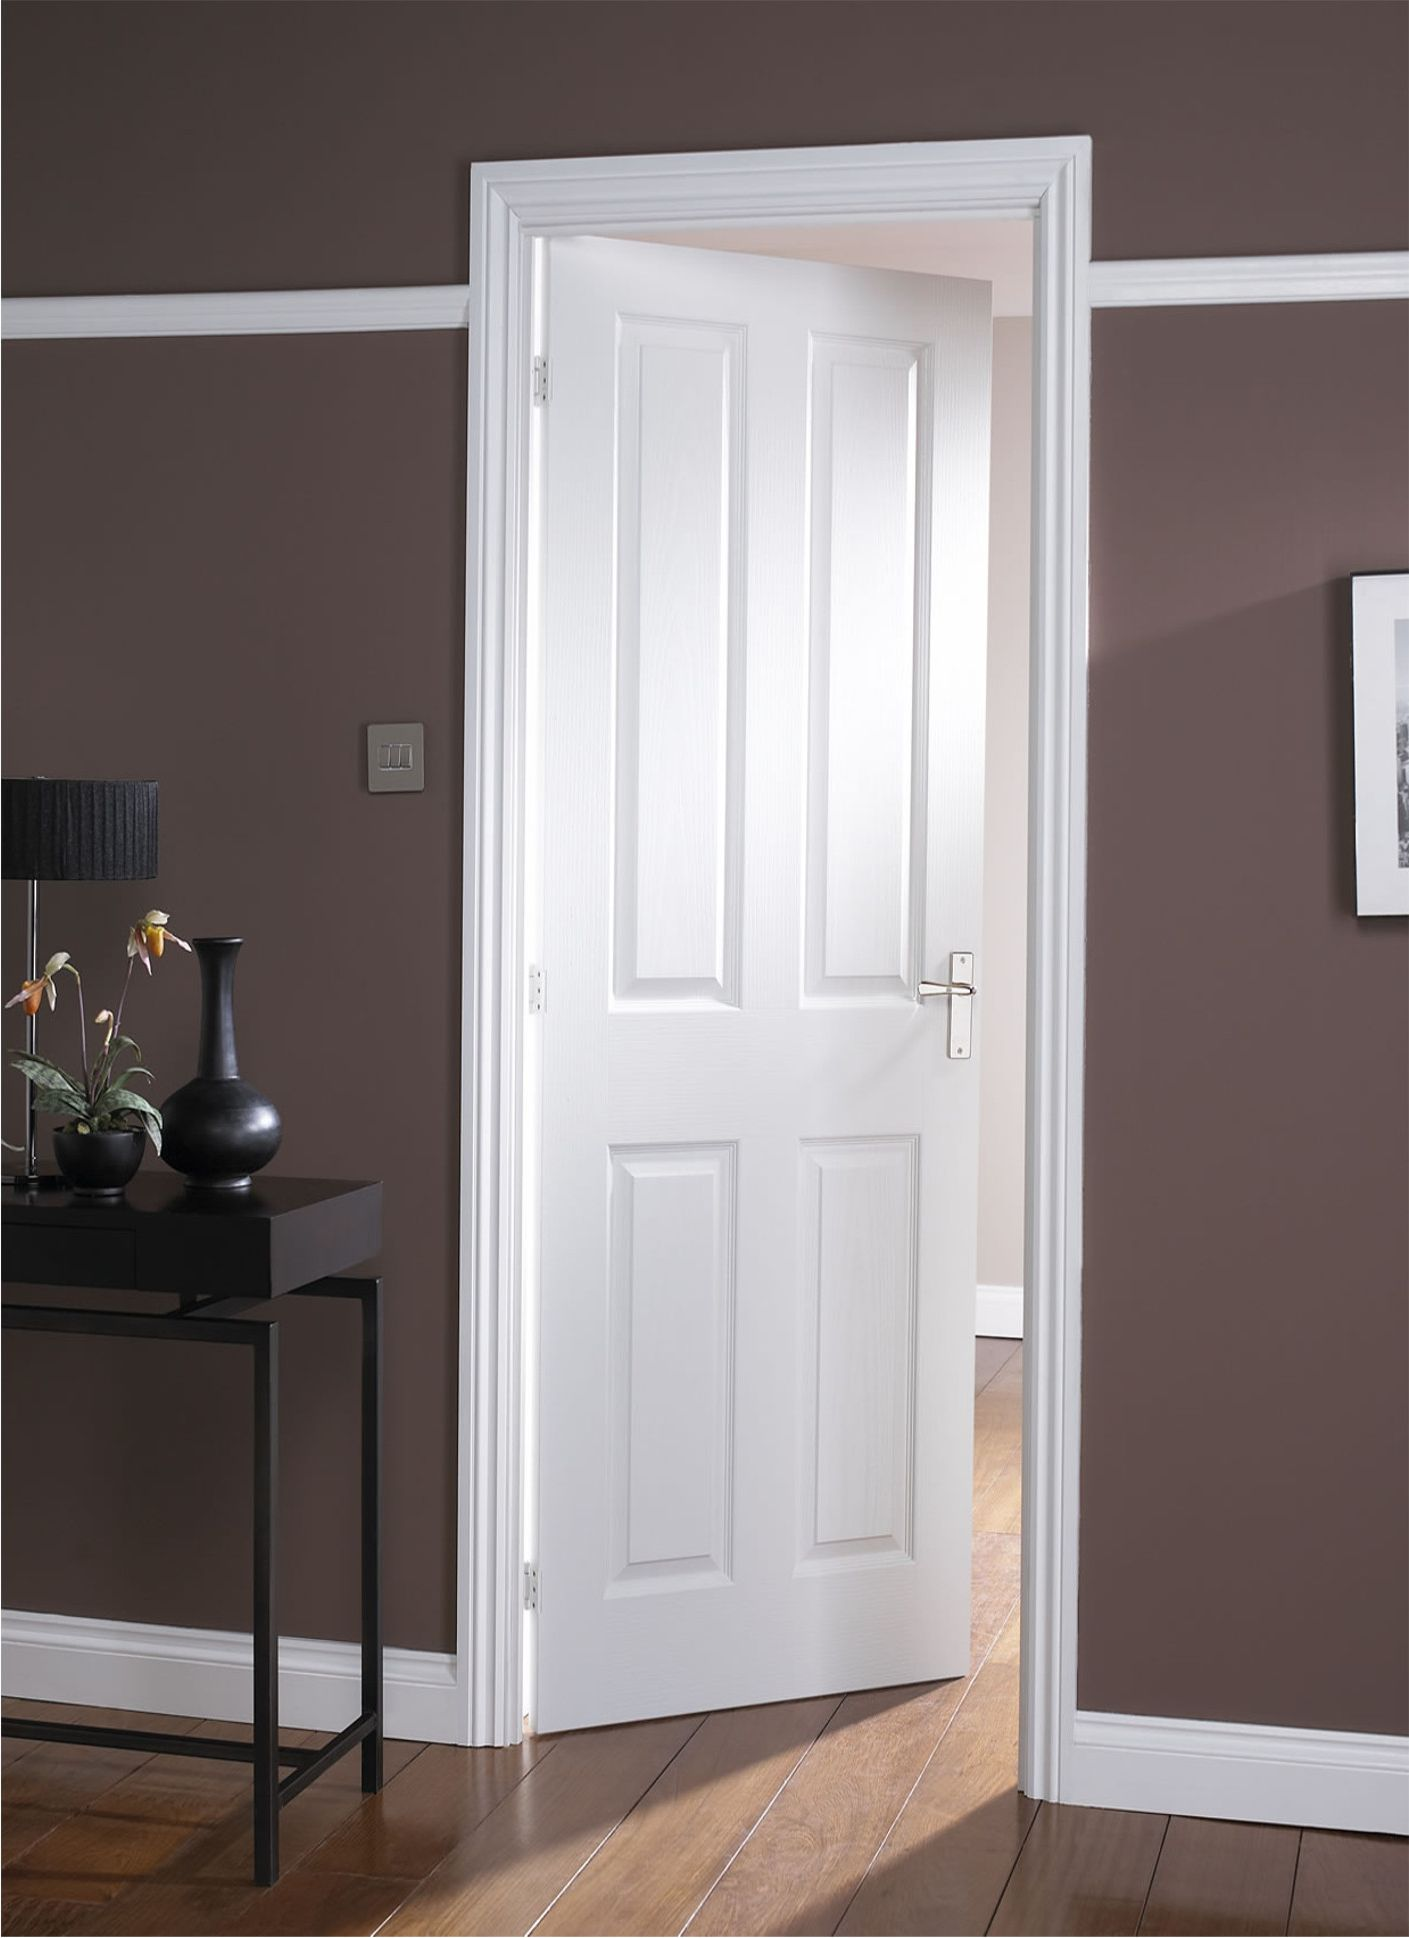 Masonite Bifold Doors White Interior Door To A Dark Room Steel Solid Core